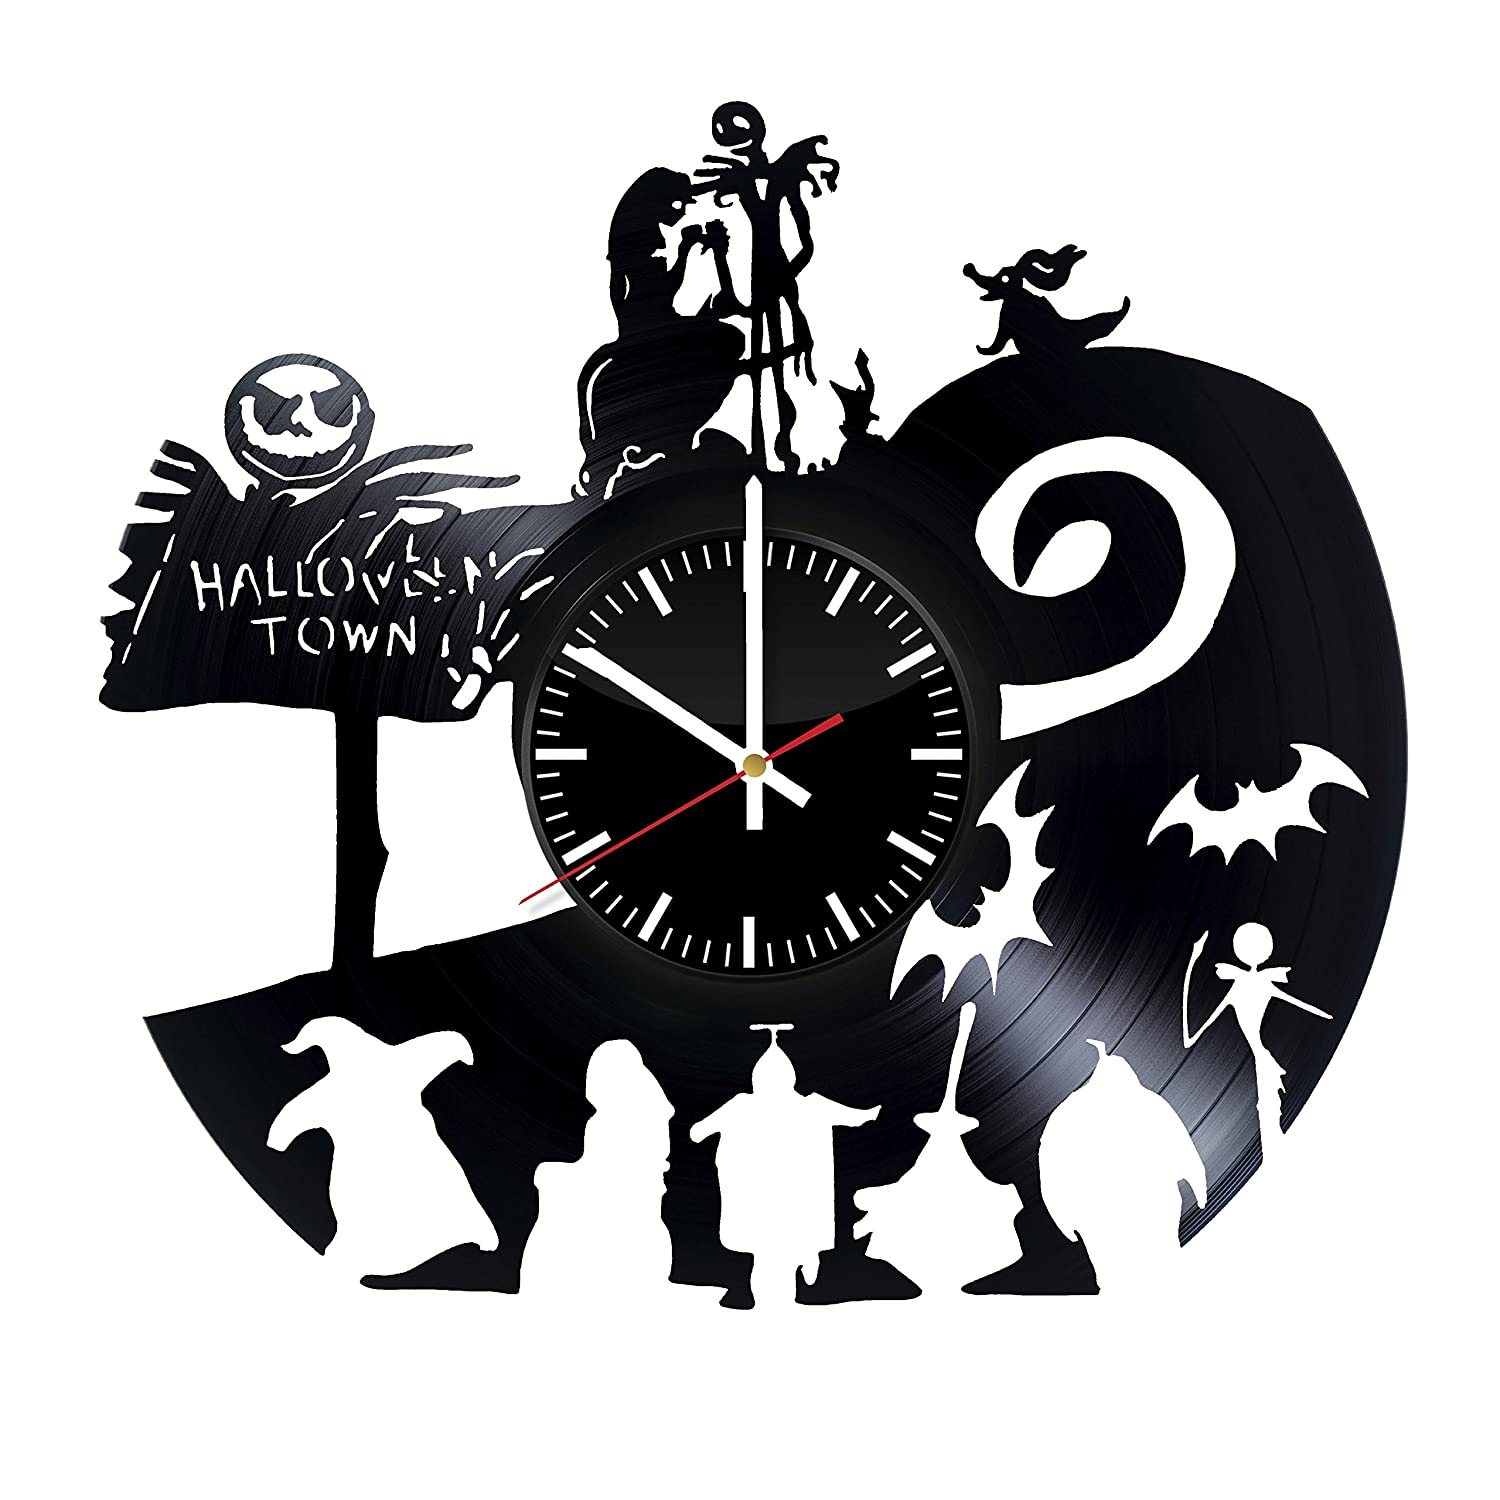 Nightmare Before Christmas Halloween Town Silhouette | www ...